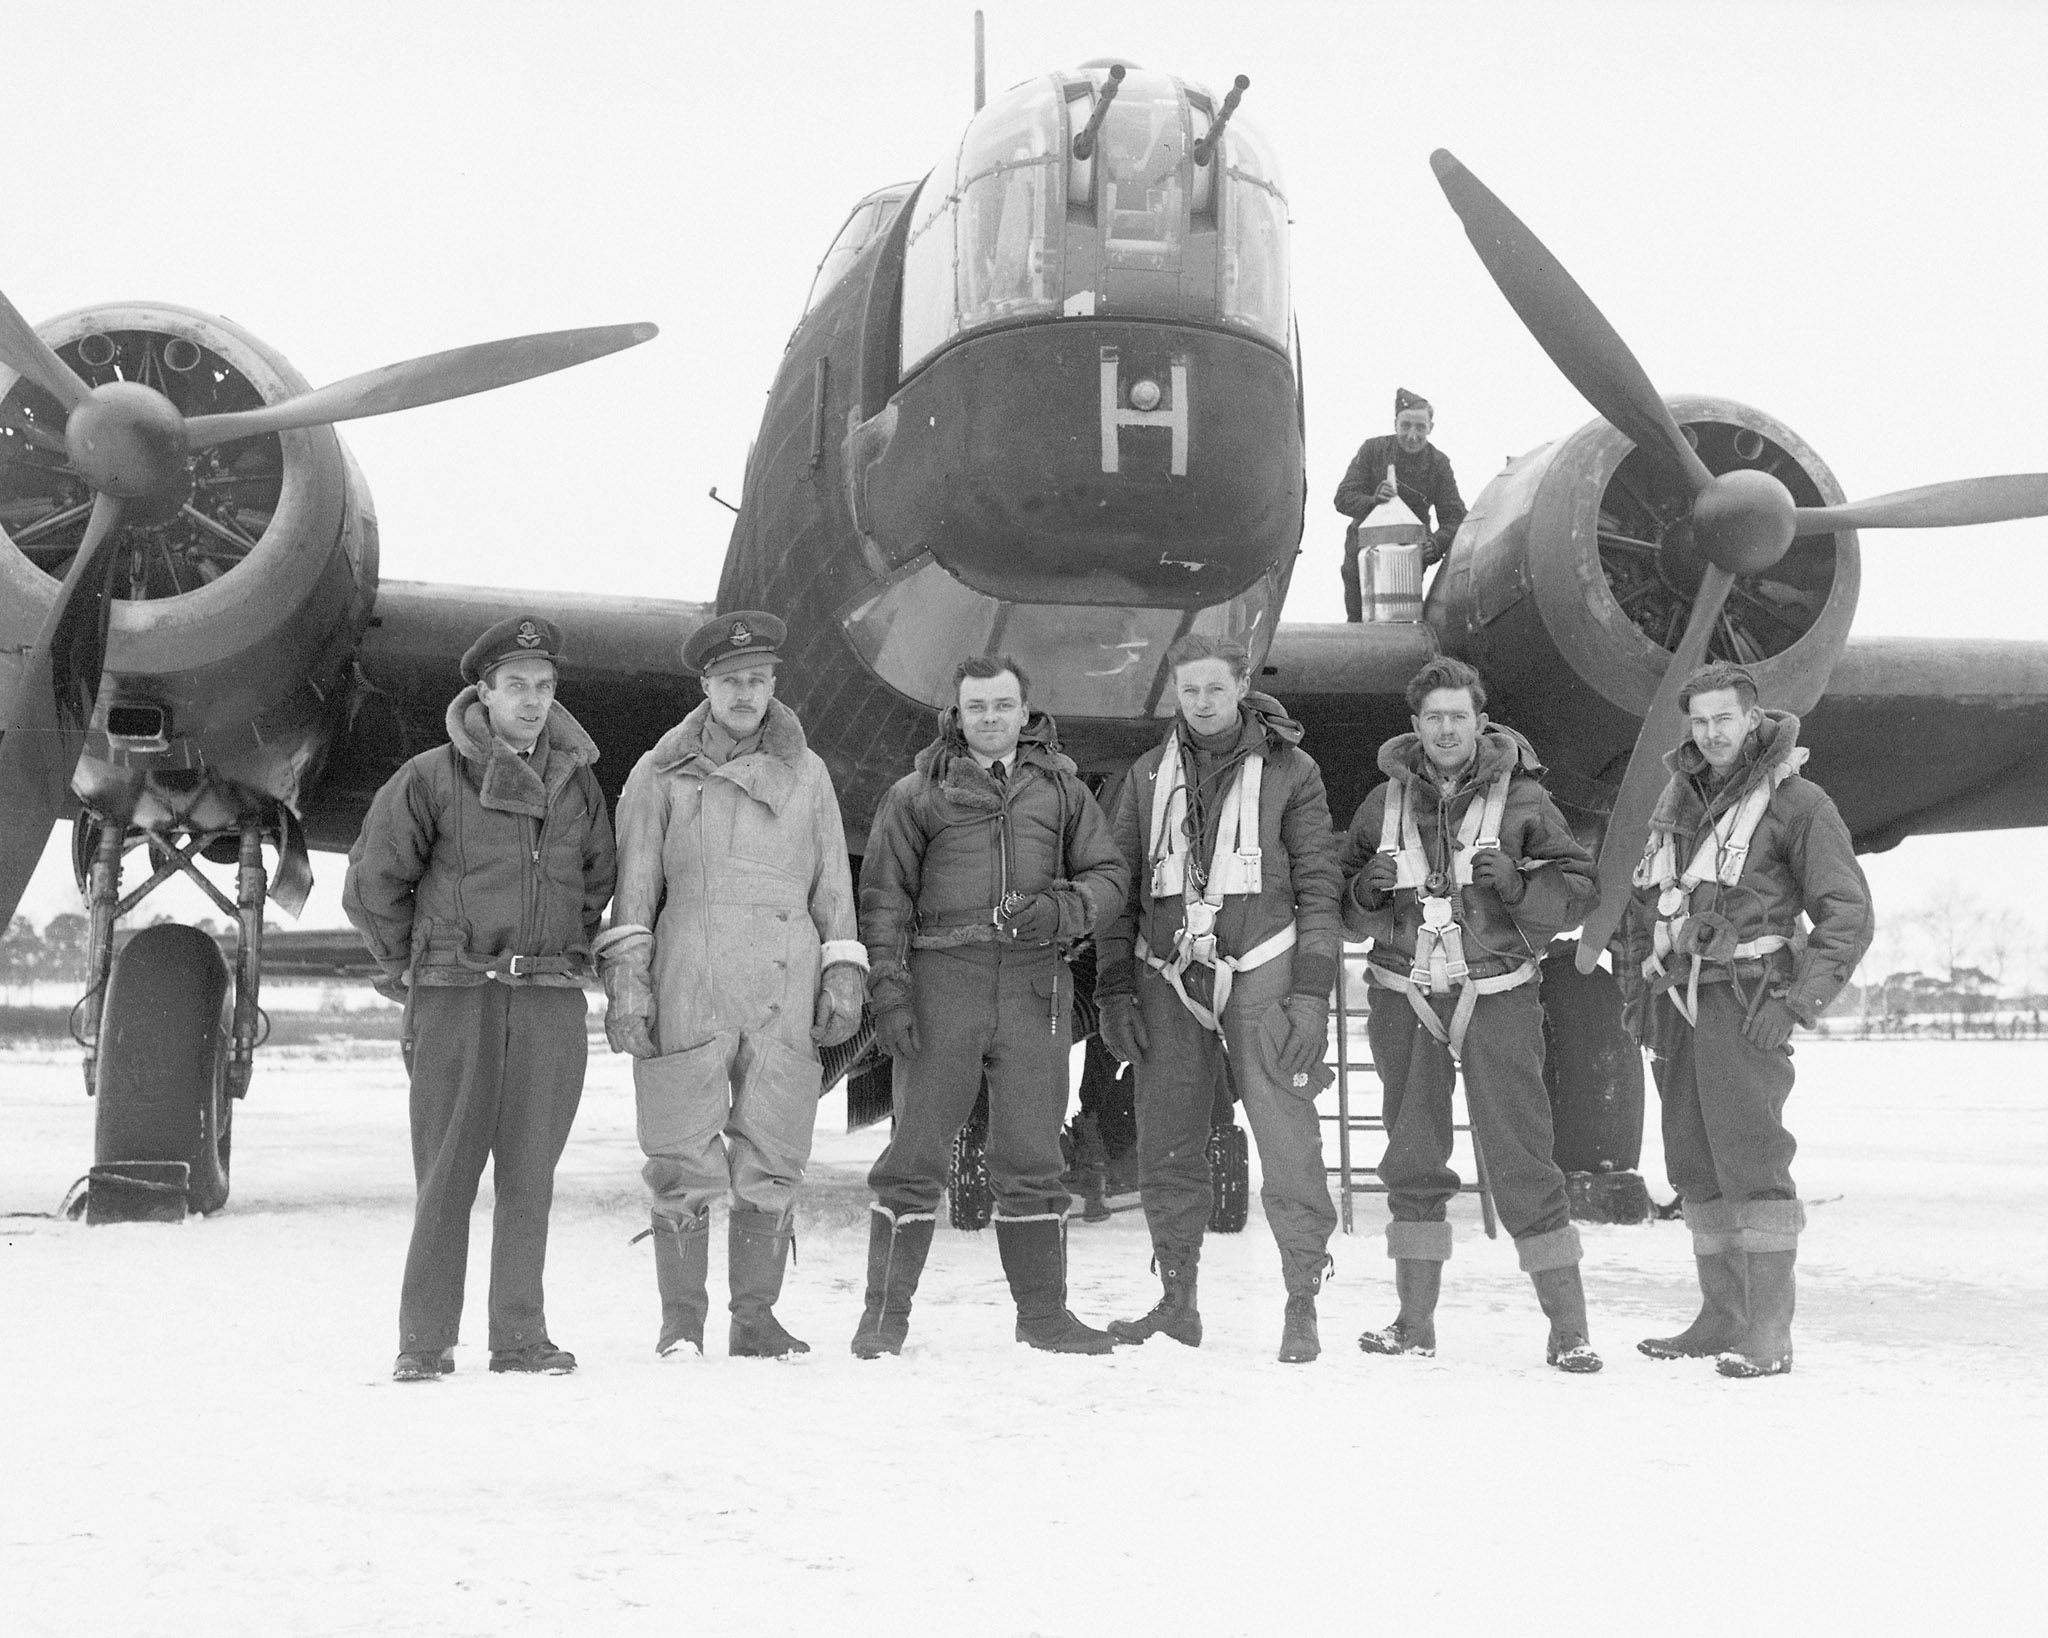 "The all-Canadian crew of 419 Squadron Vickers Wellington Mk 1C bomber (""H"" for Harry) gather for a photograph on their Royal Canadian Air Force base in England on February 9, 1942. From left are Squadron Leader F.W.S. Turner (Ganges, British Columbia); Pilot Officer K.E. Hobson (Winnipeg, Manitoba); Flight Sergeant G.P. Fowler (Victoria, British Columbia); Flight Sergeant C.A. Robson (Truro, Nova Scotia); Flight Sergeant N.G. Arthur (Edmonton, Alberta); and Flight Sergeant H.T. Dell (Niagara Falls, Ontario). The groundcrew member on the wing is unidentified. PHOTO: DND Archives, PL-7096"